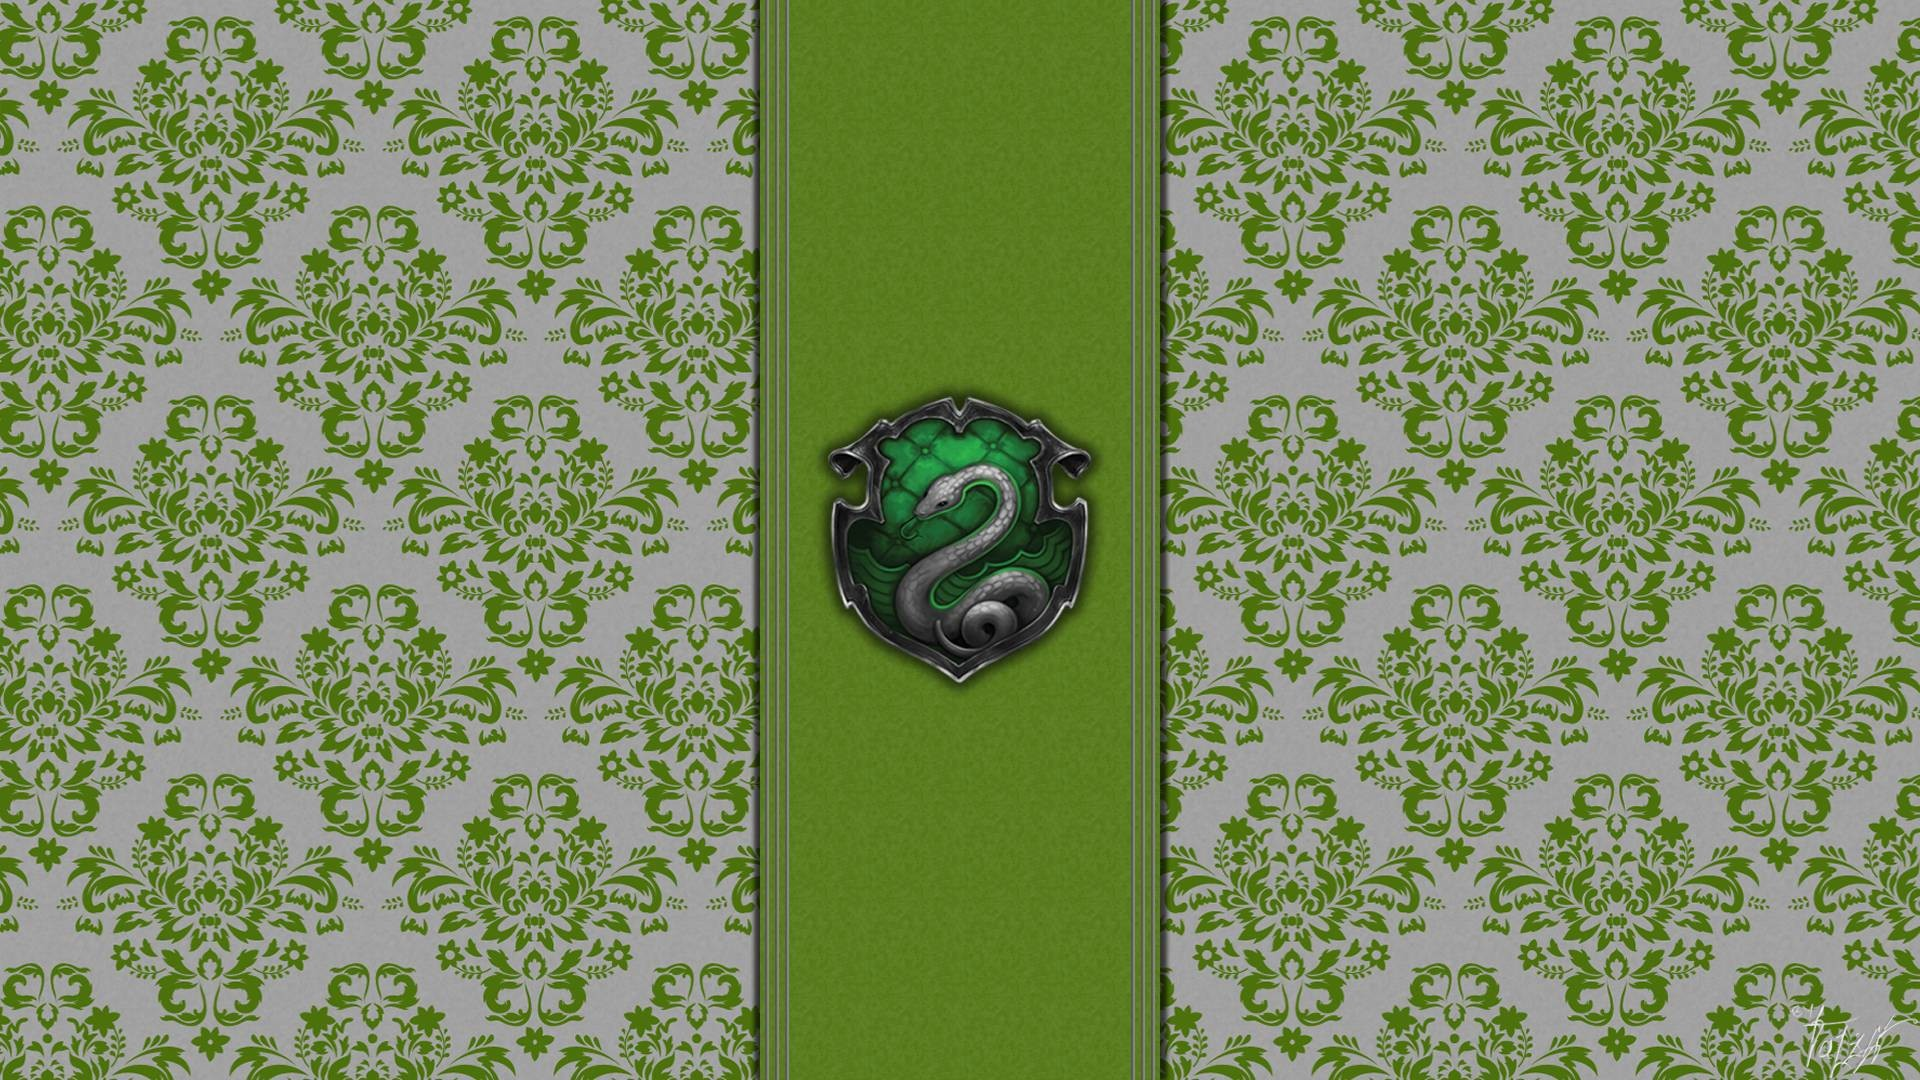 Res: 1920x1080, Wallpaper for all the Slytherins   Slytherin   Pinterest